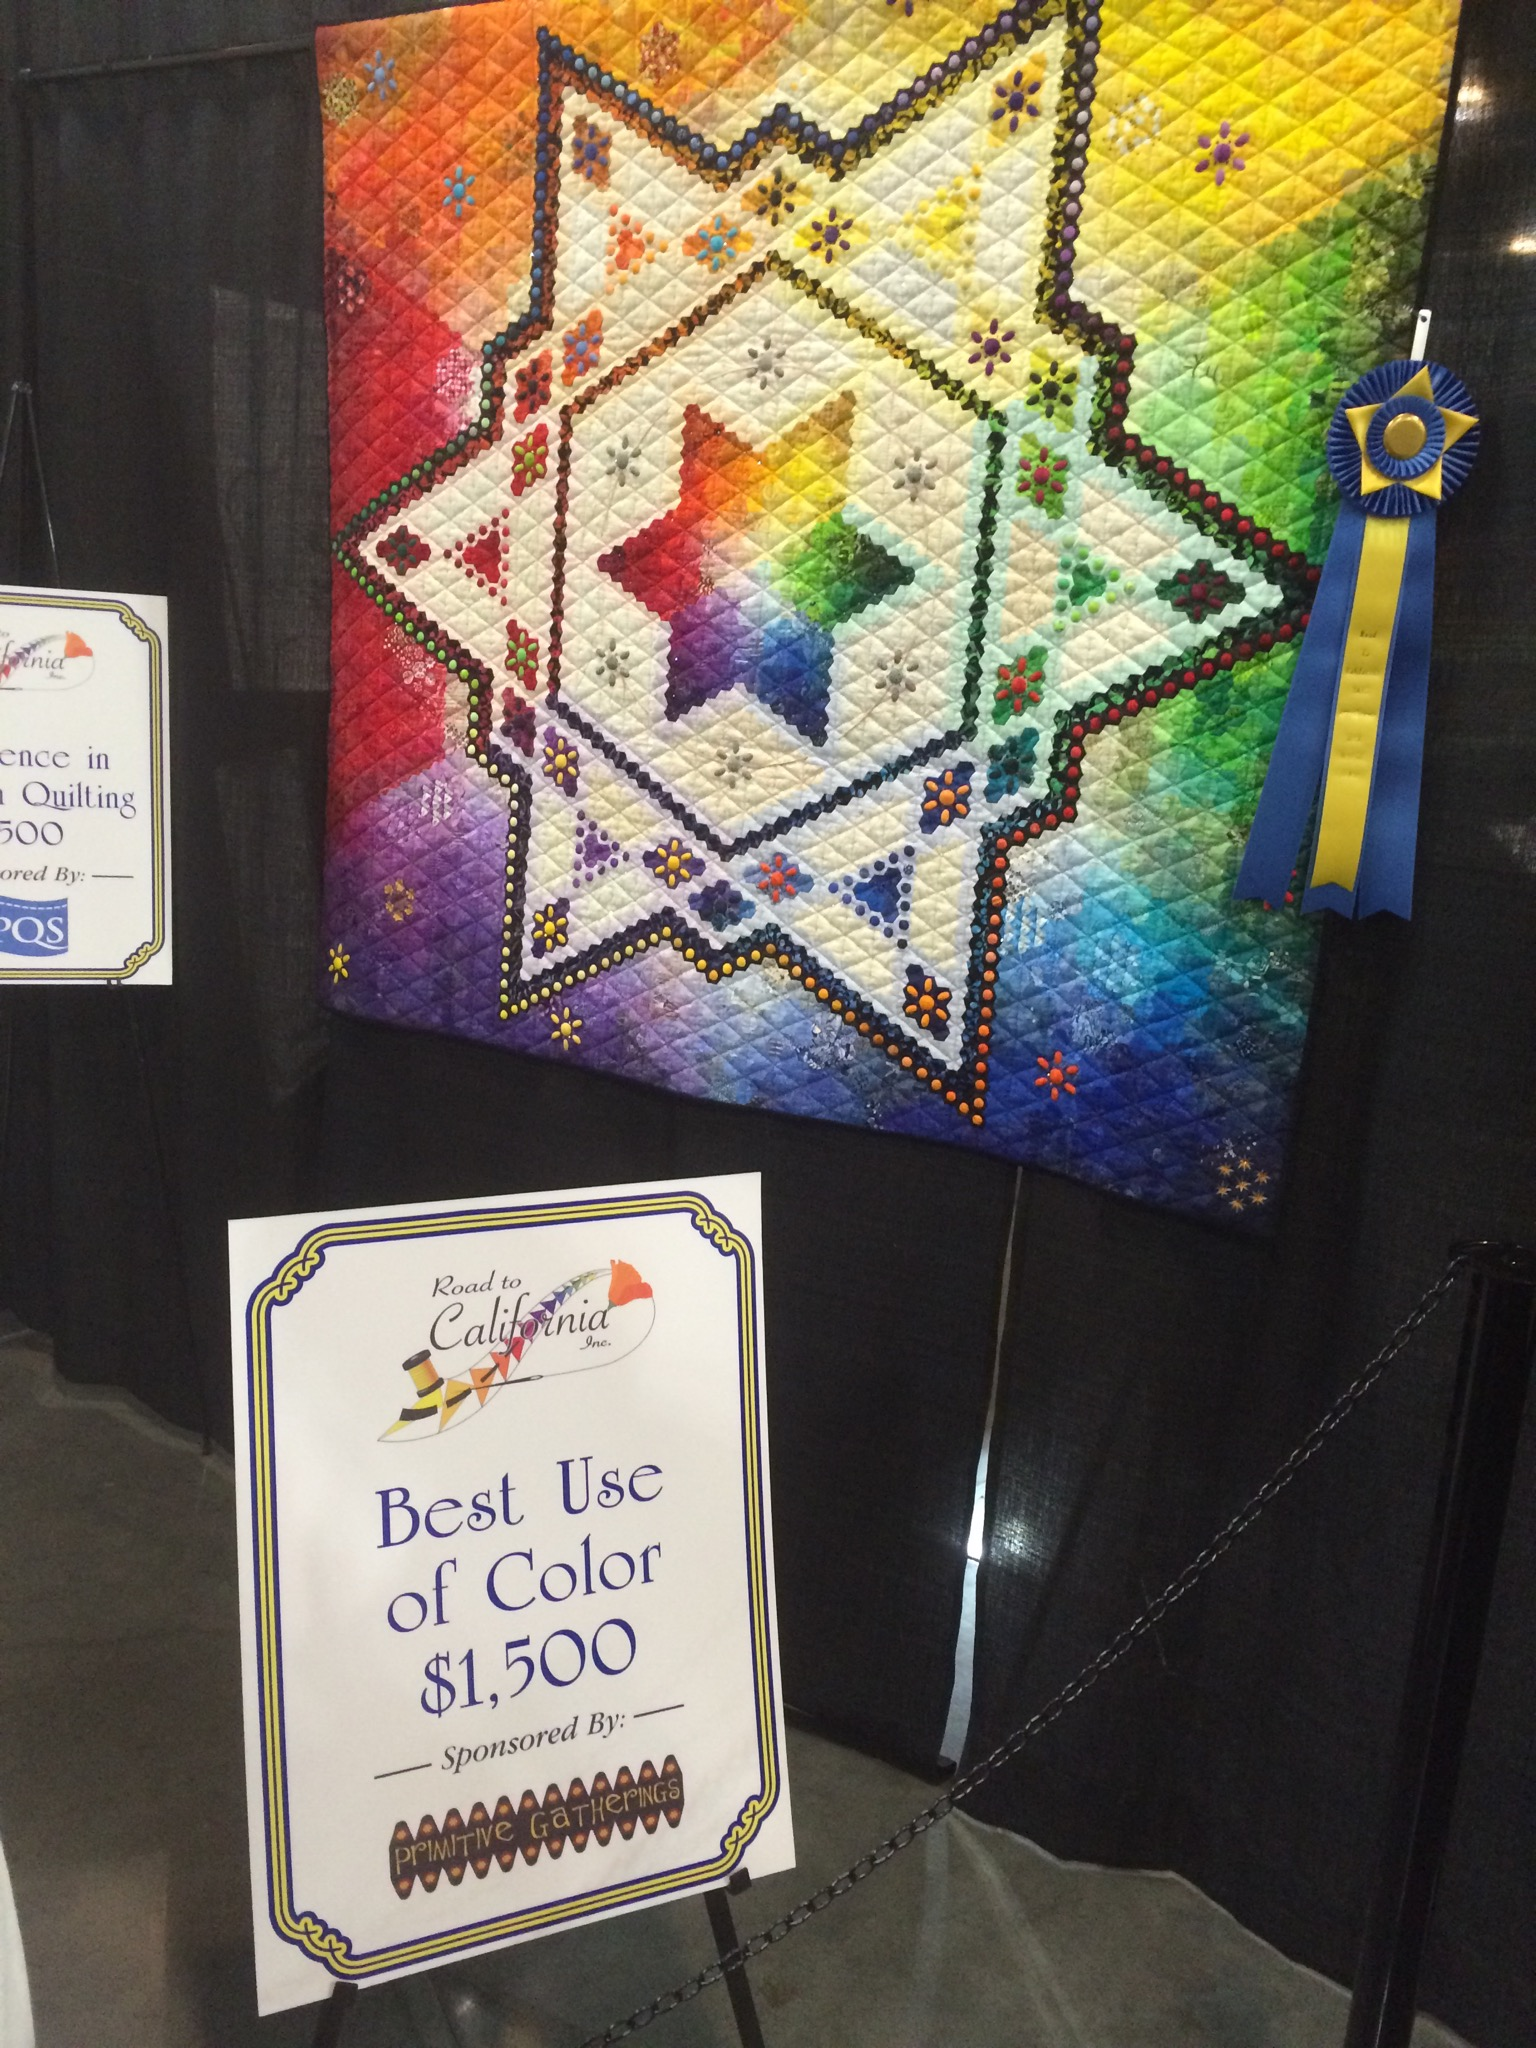 Road to California quilt show | Lisa Bongean's Weblog : california quilt shows - Adamdwight.com